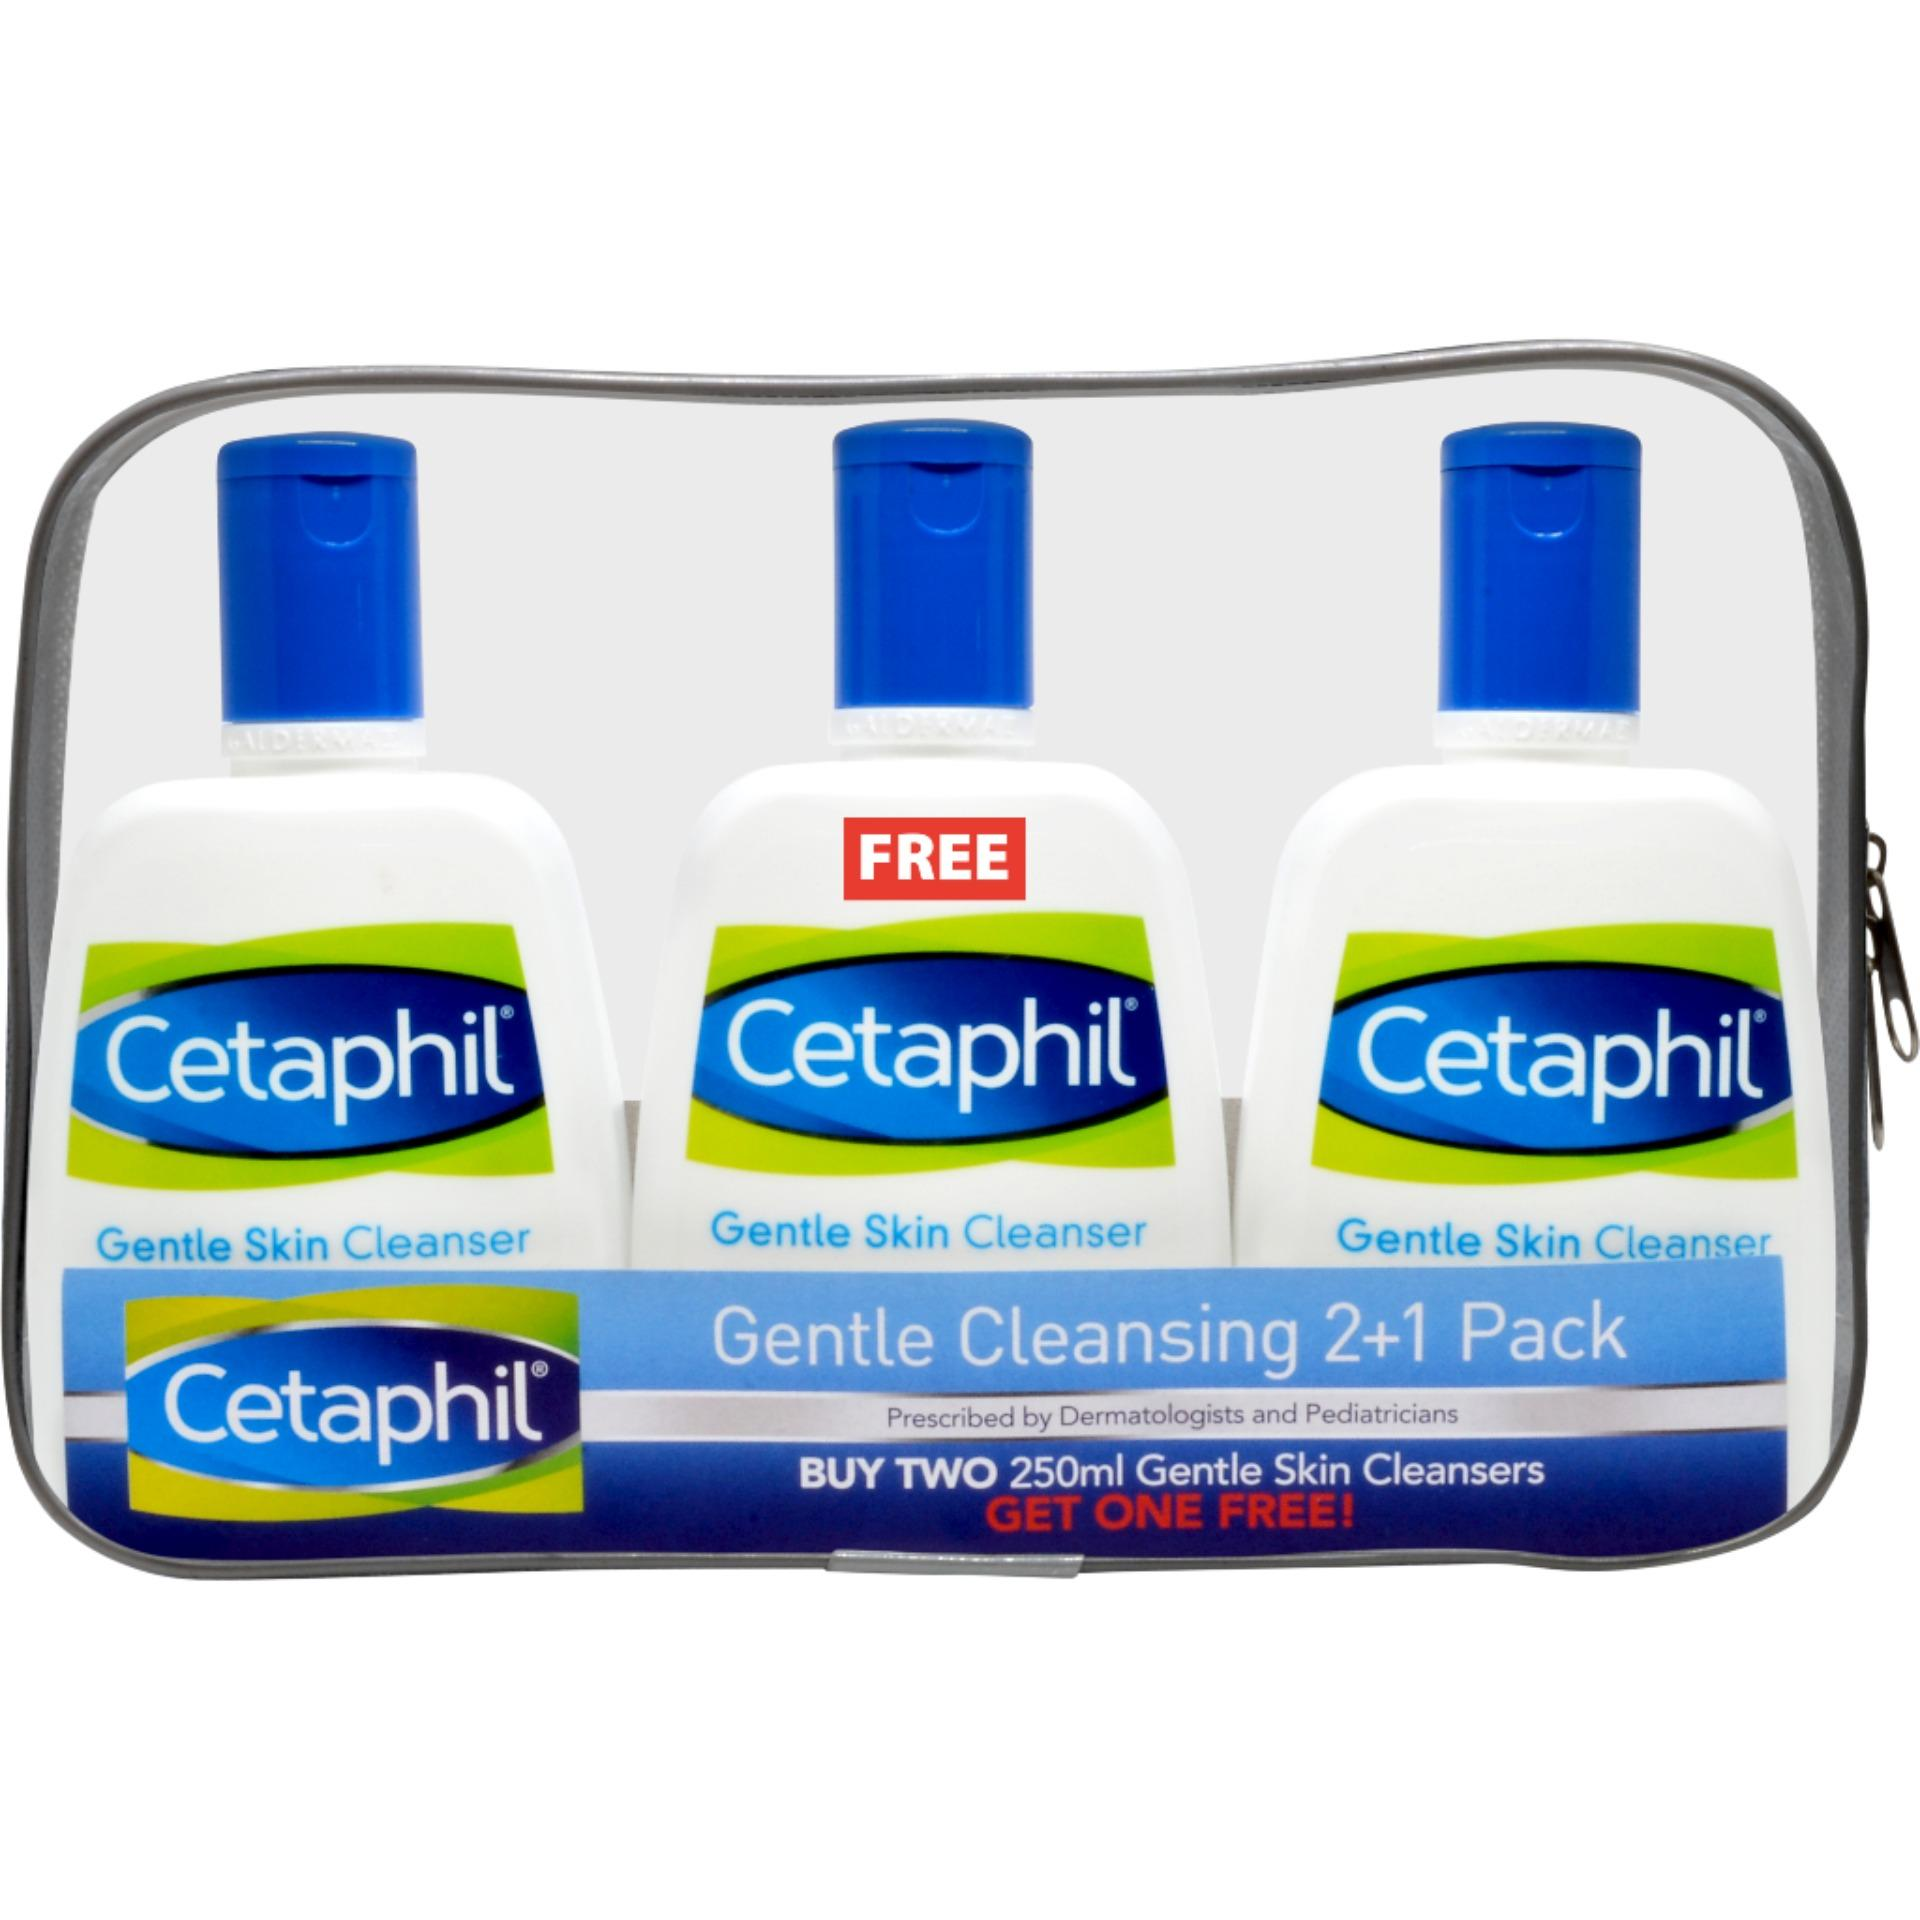 Latest Cetaphil Products Up To 70 Off Lazada Philippines Gentle Skin Cleanser 500 Ml 250ml Promo Pack